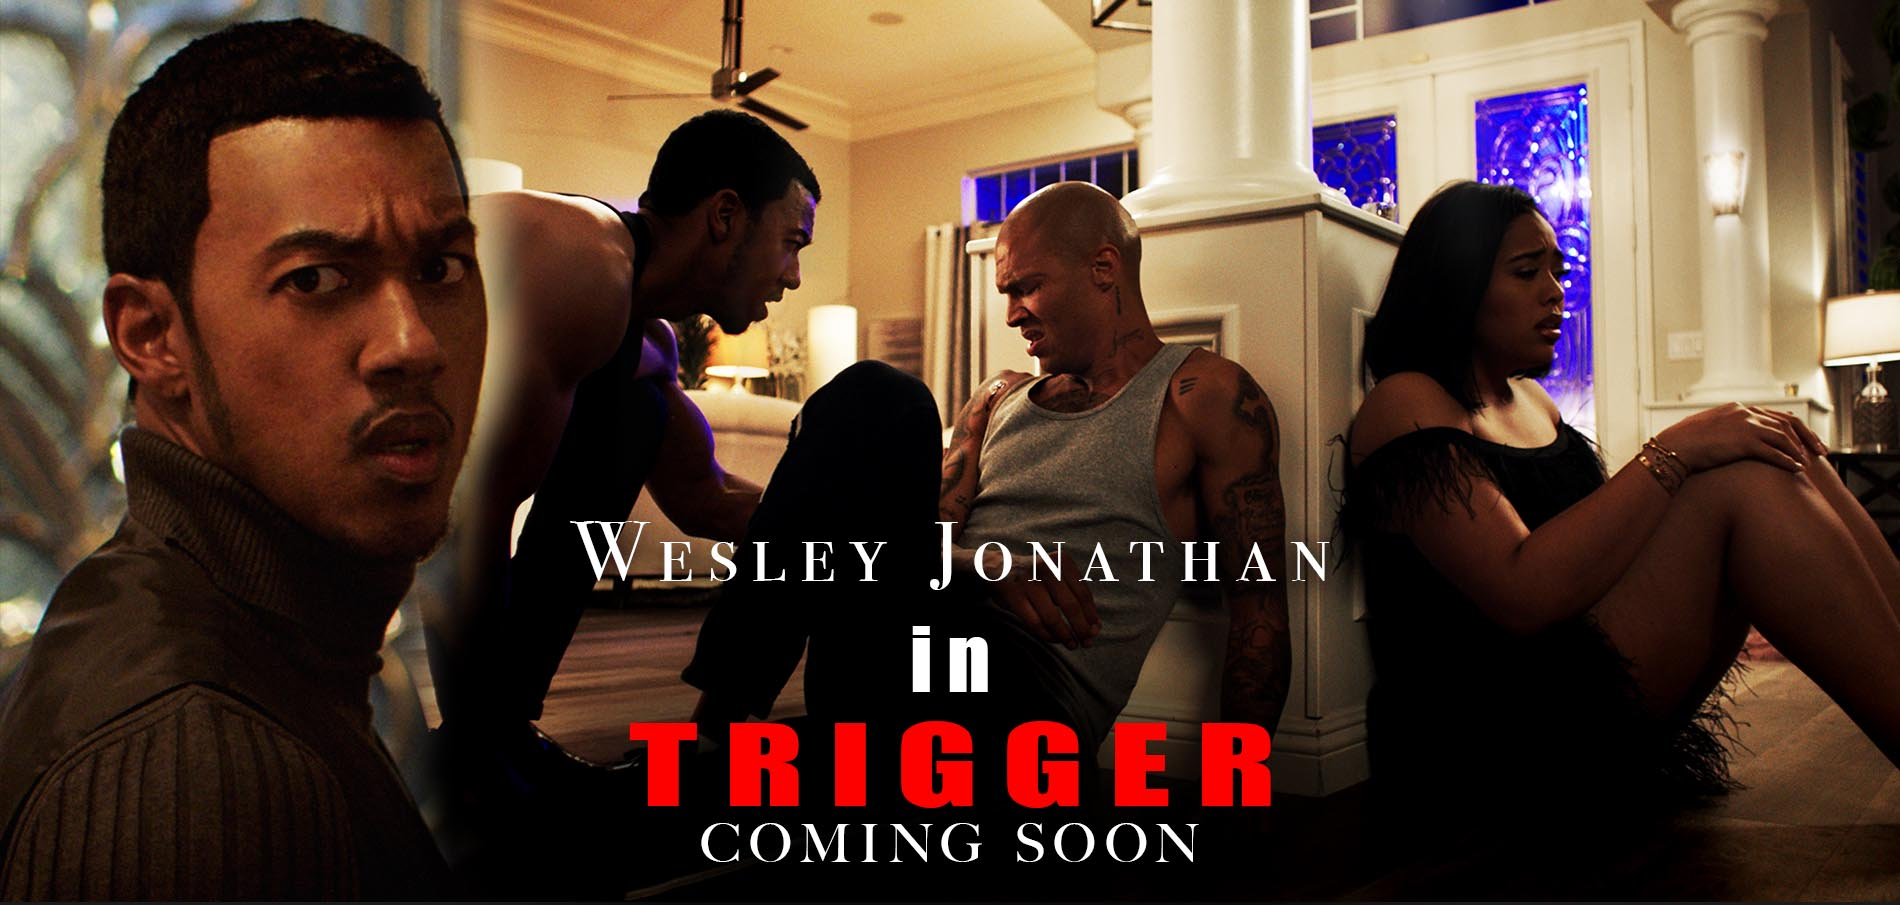 Trigger wesley jonathan footage films Christopher B Stokes